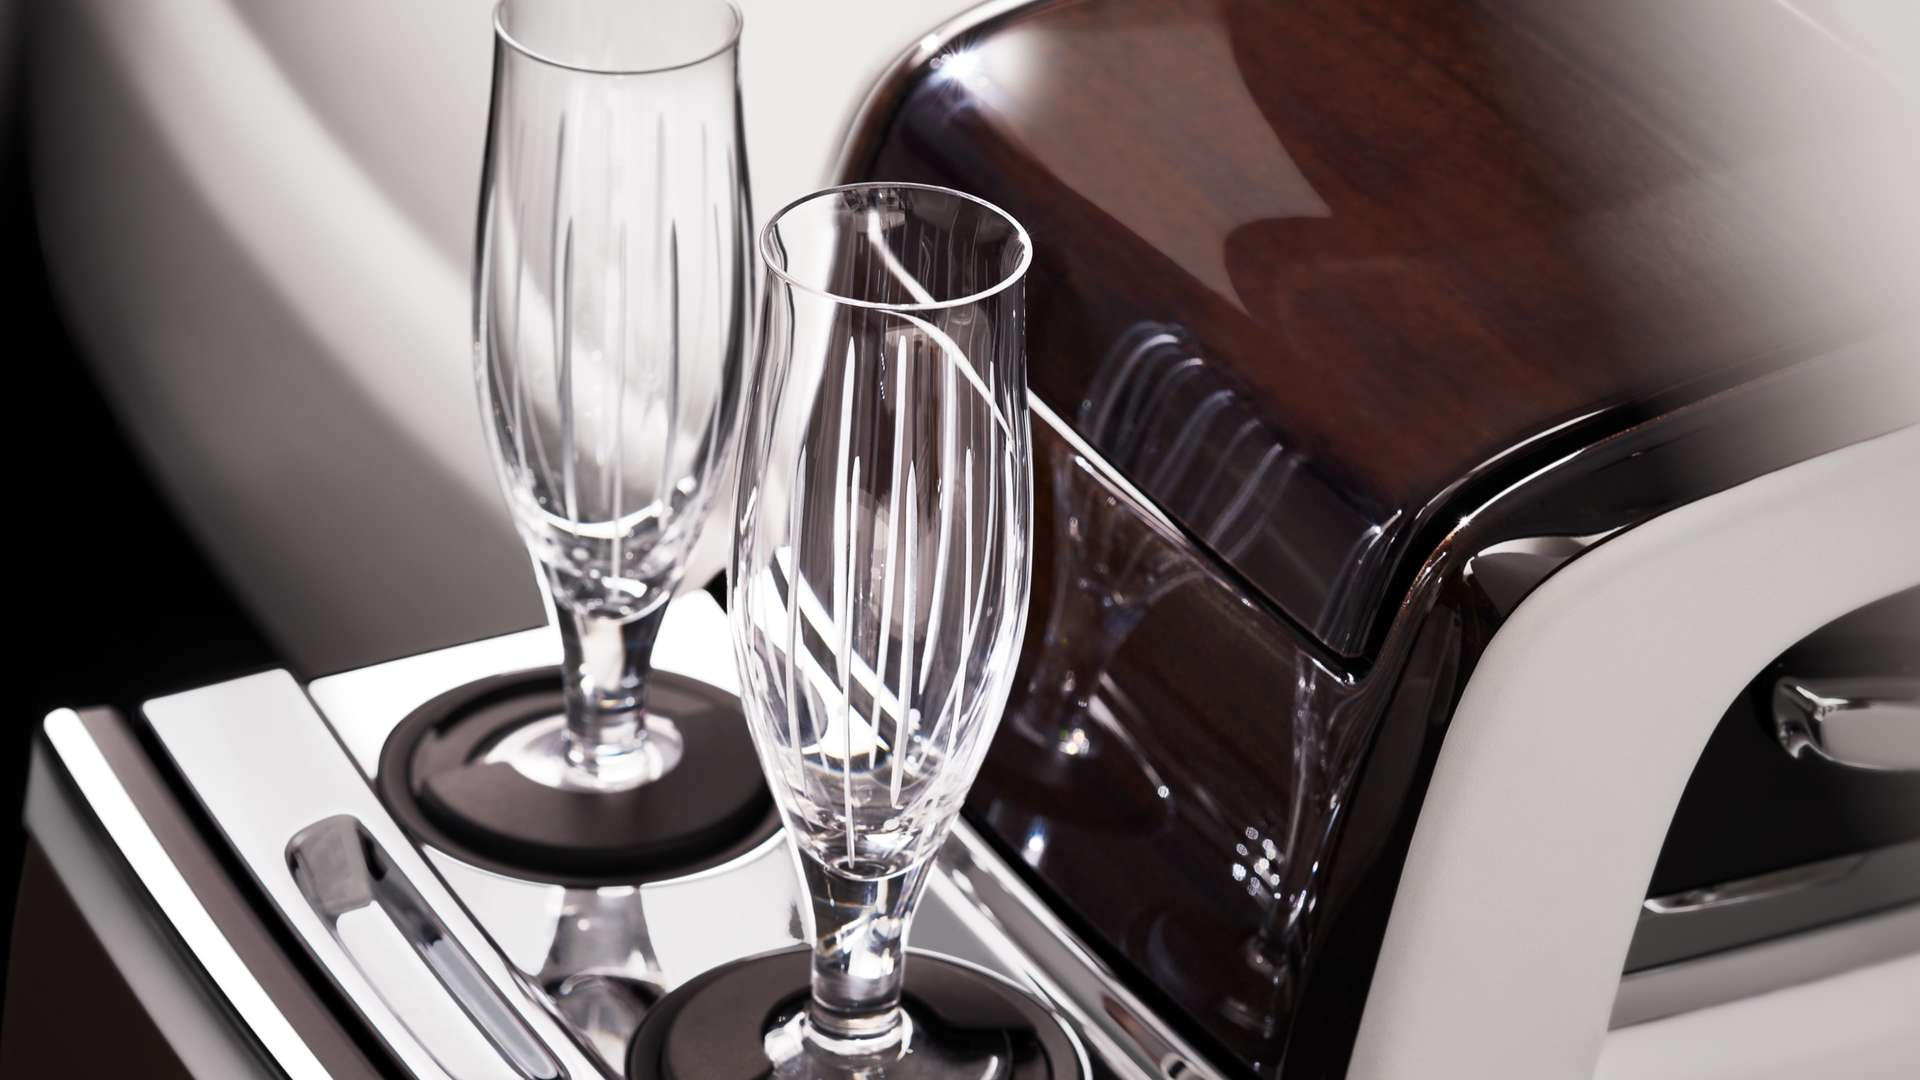 Champagne glasses inside a Rolls-Royce Phantom EWB model